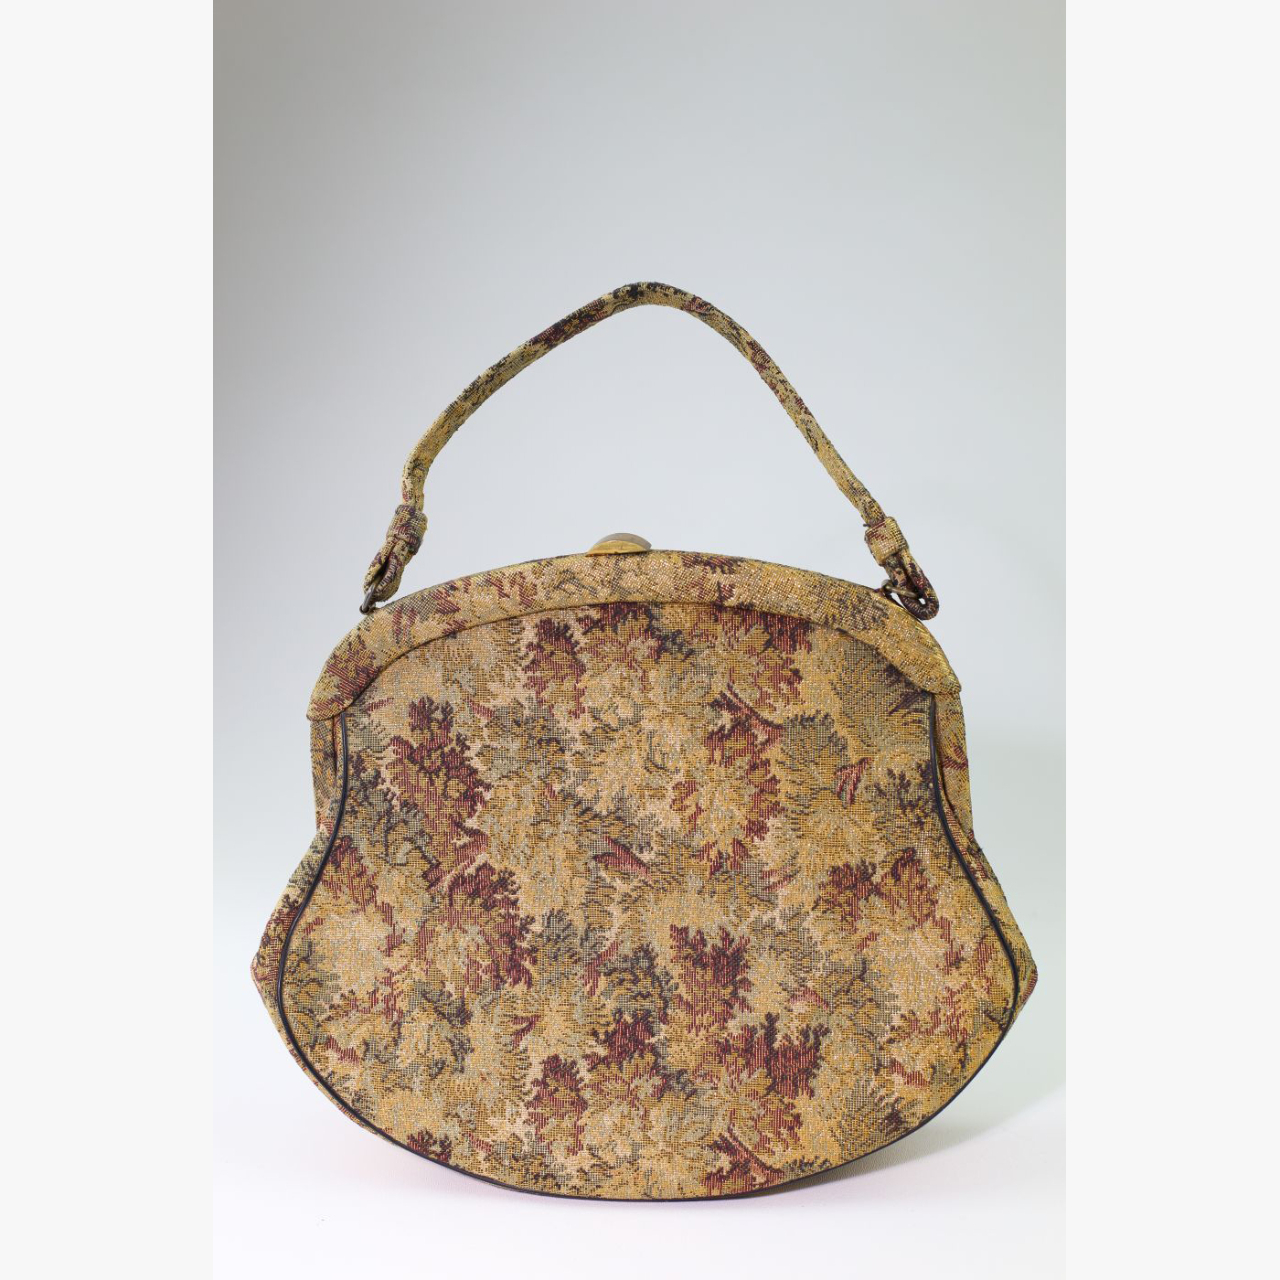 Product Image 1 - 1960's Gold Brocade Carpet Bag  This